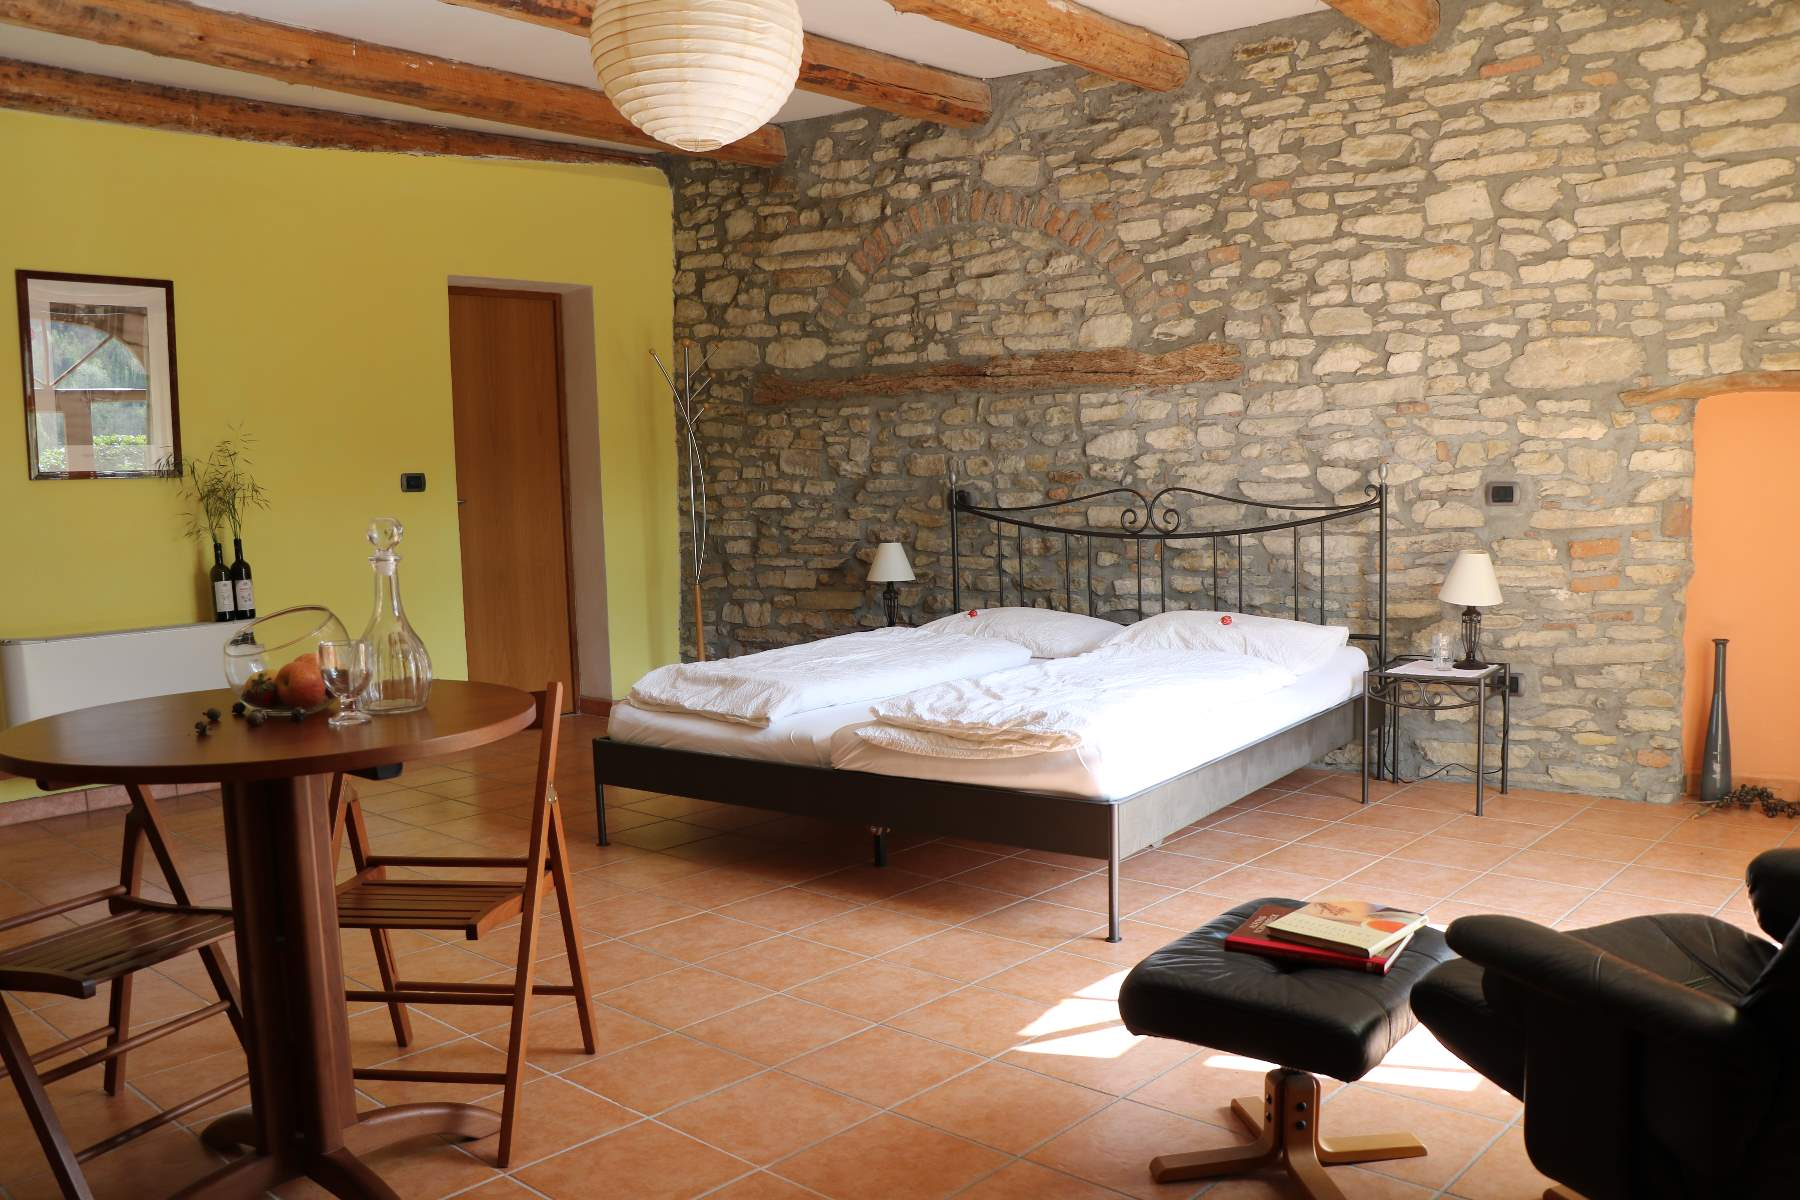 Casa Re, Piemonte - Doppelzimmer | double room | camera per due